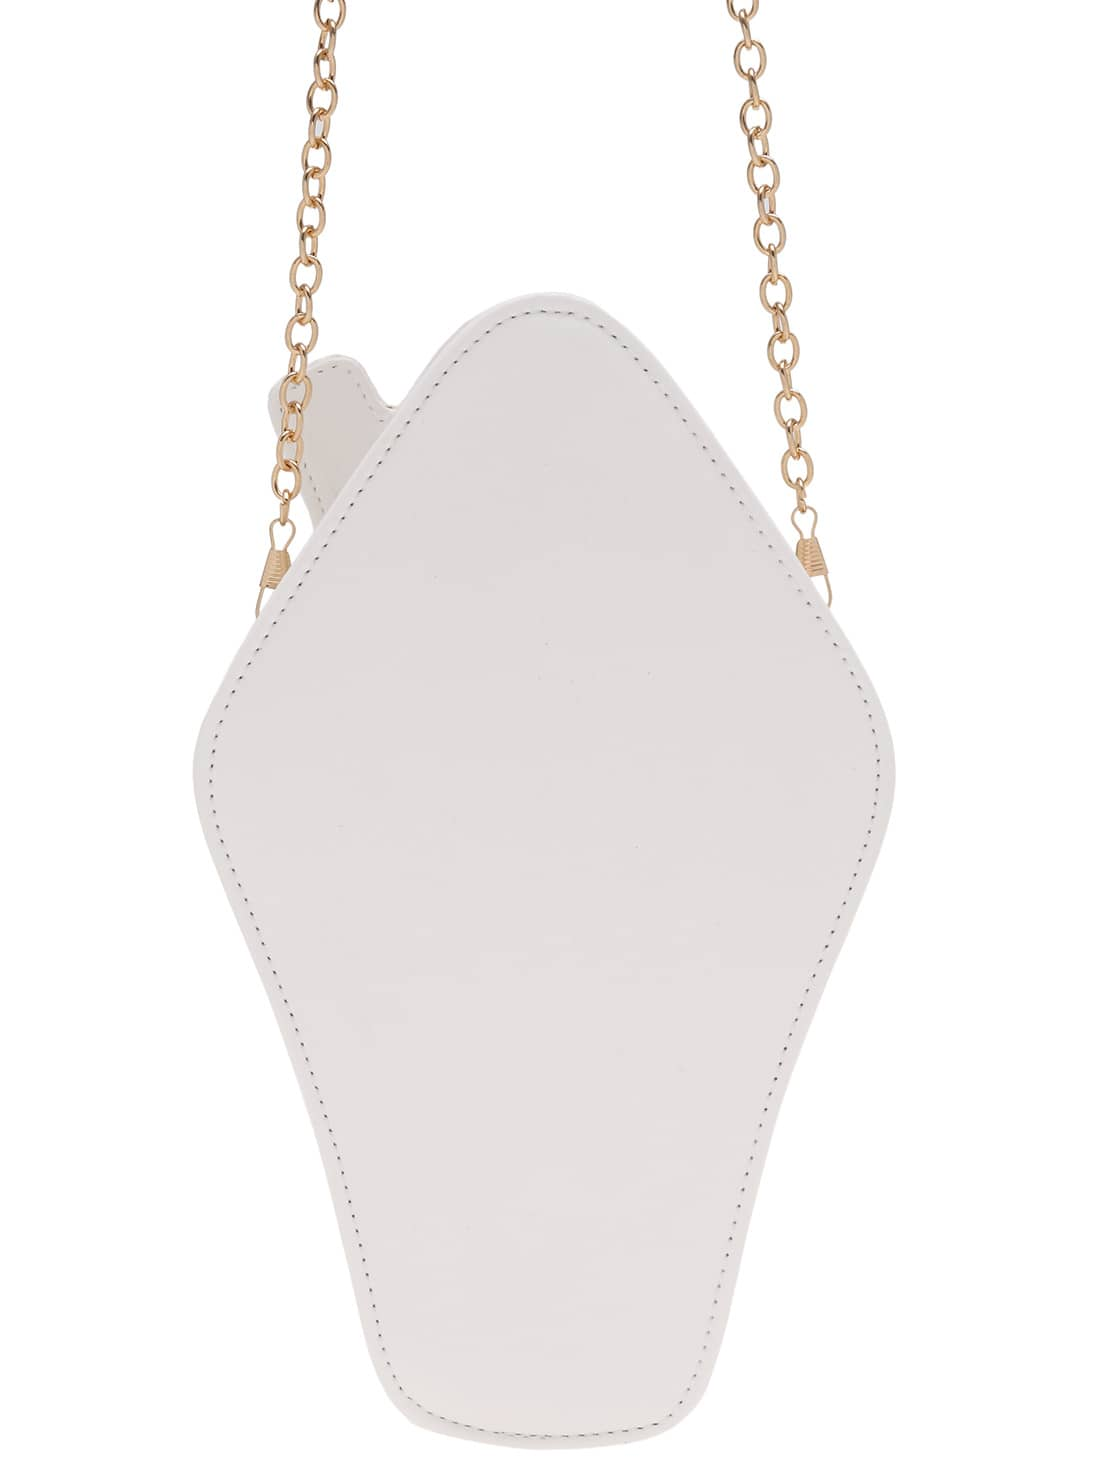 White Ice Cream Shaped Chain Shoulder Bag Shein(sheinside. Greek Necklace. Paw Pendant. Yellowish Brown Diamond. Bead Chains. Wholesale Body Jewelry. Sand Dollar Necklace. Tiger Pendant. Gold Diamond Bands